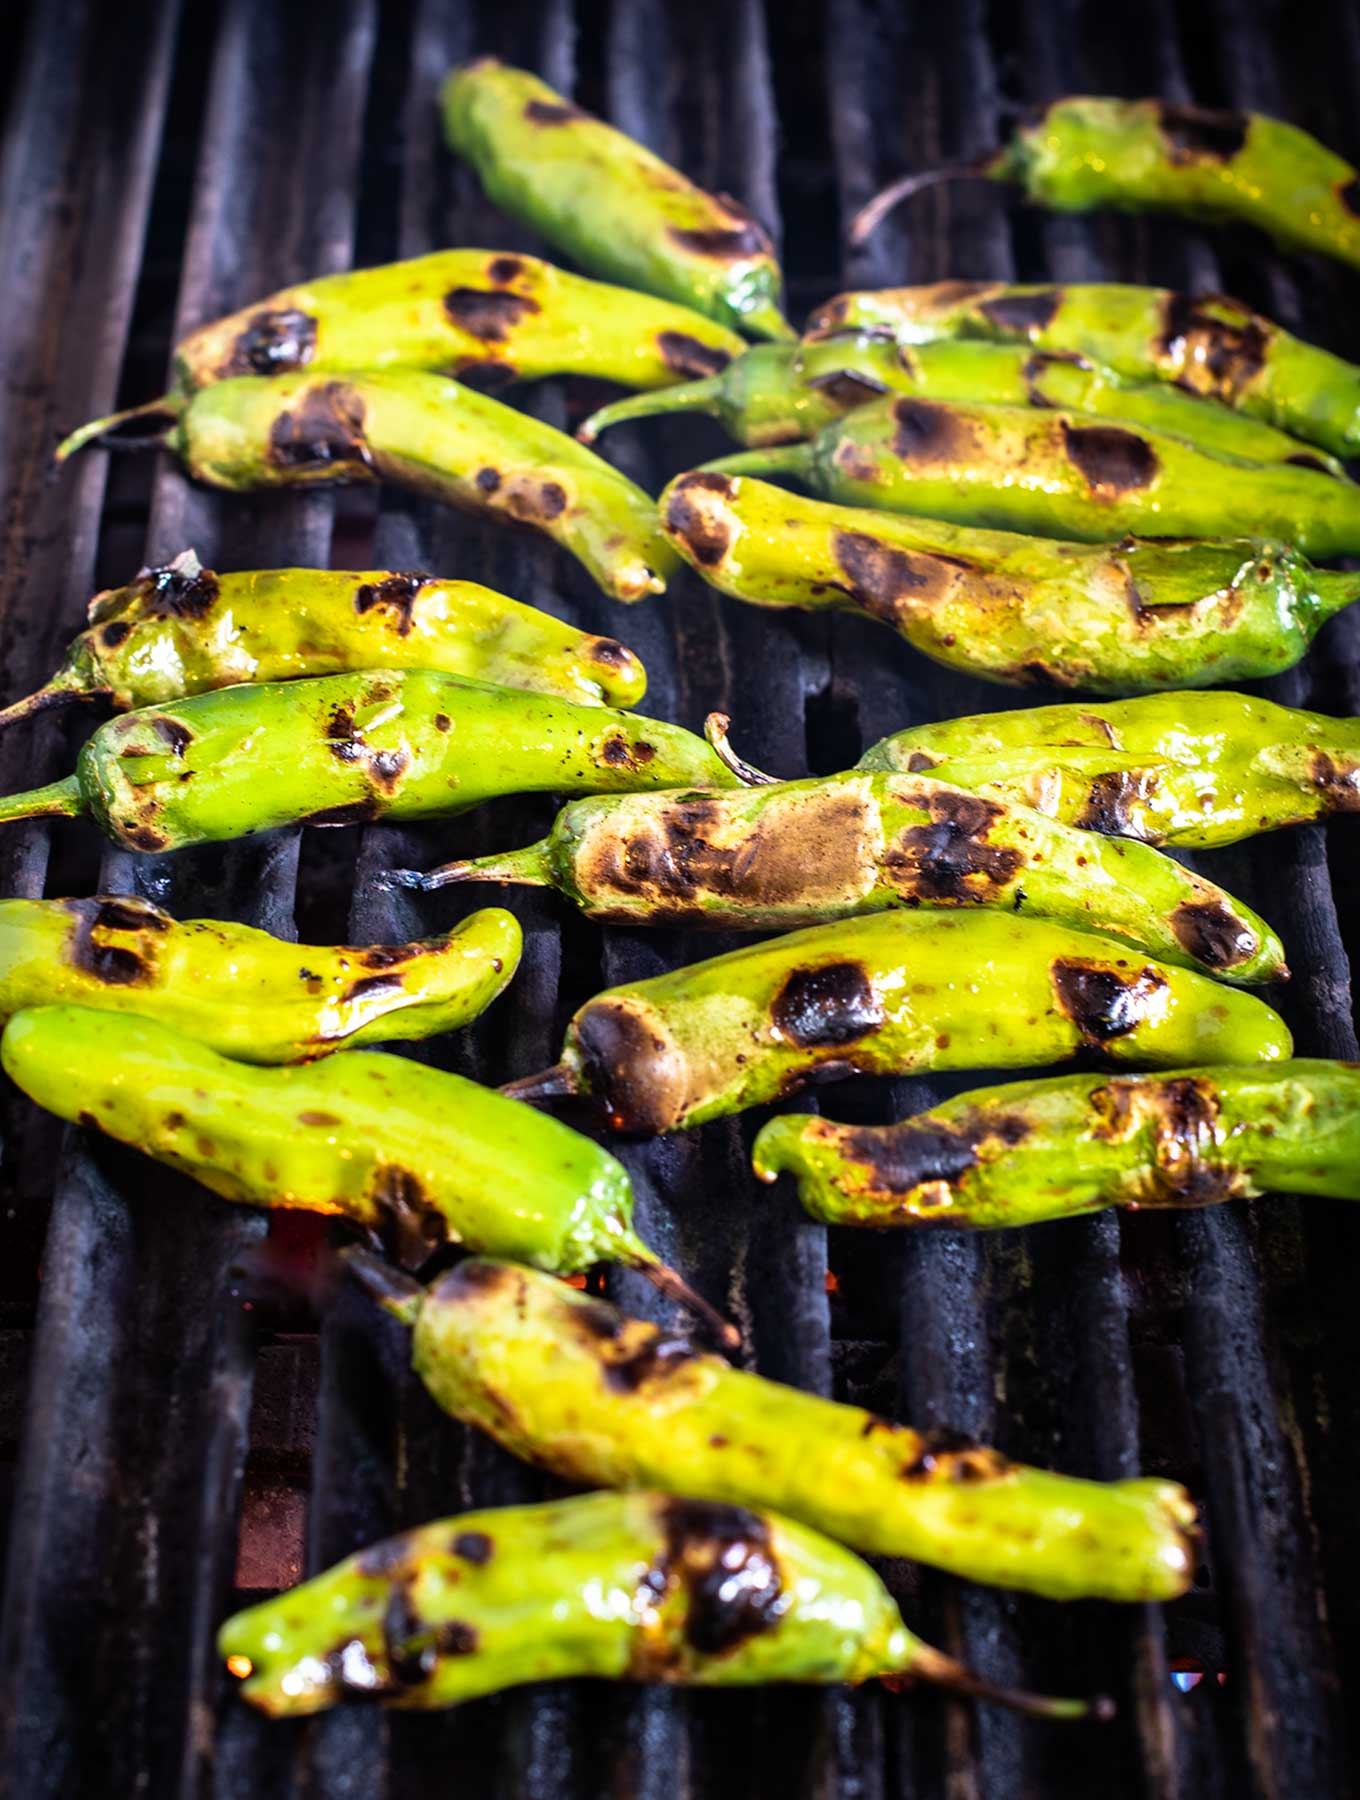 Shishito peppers on the grill